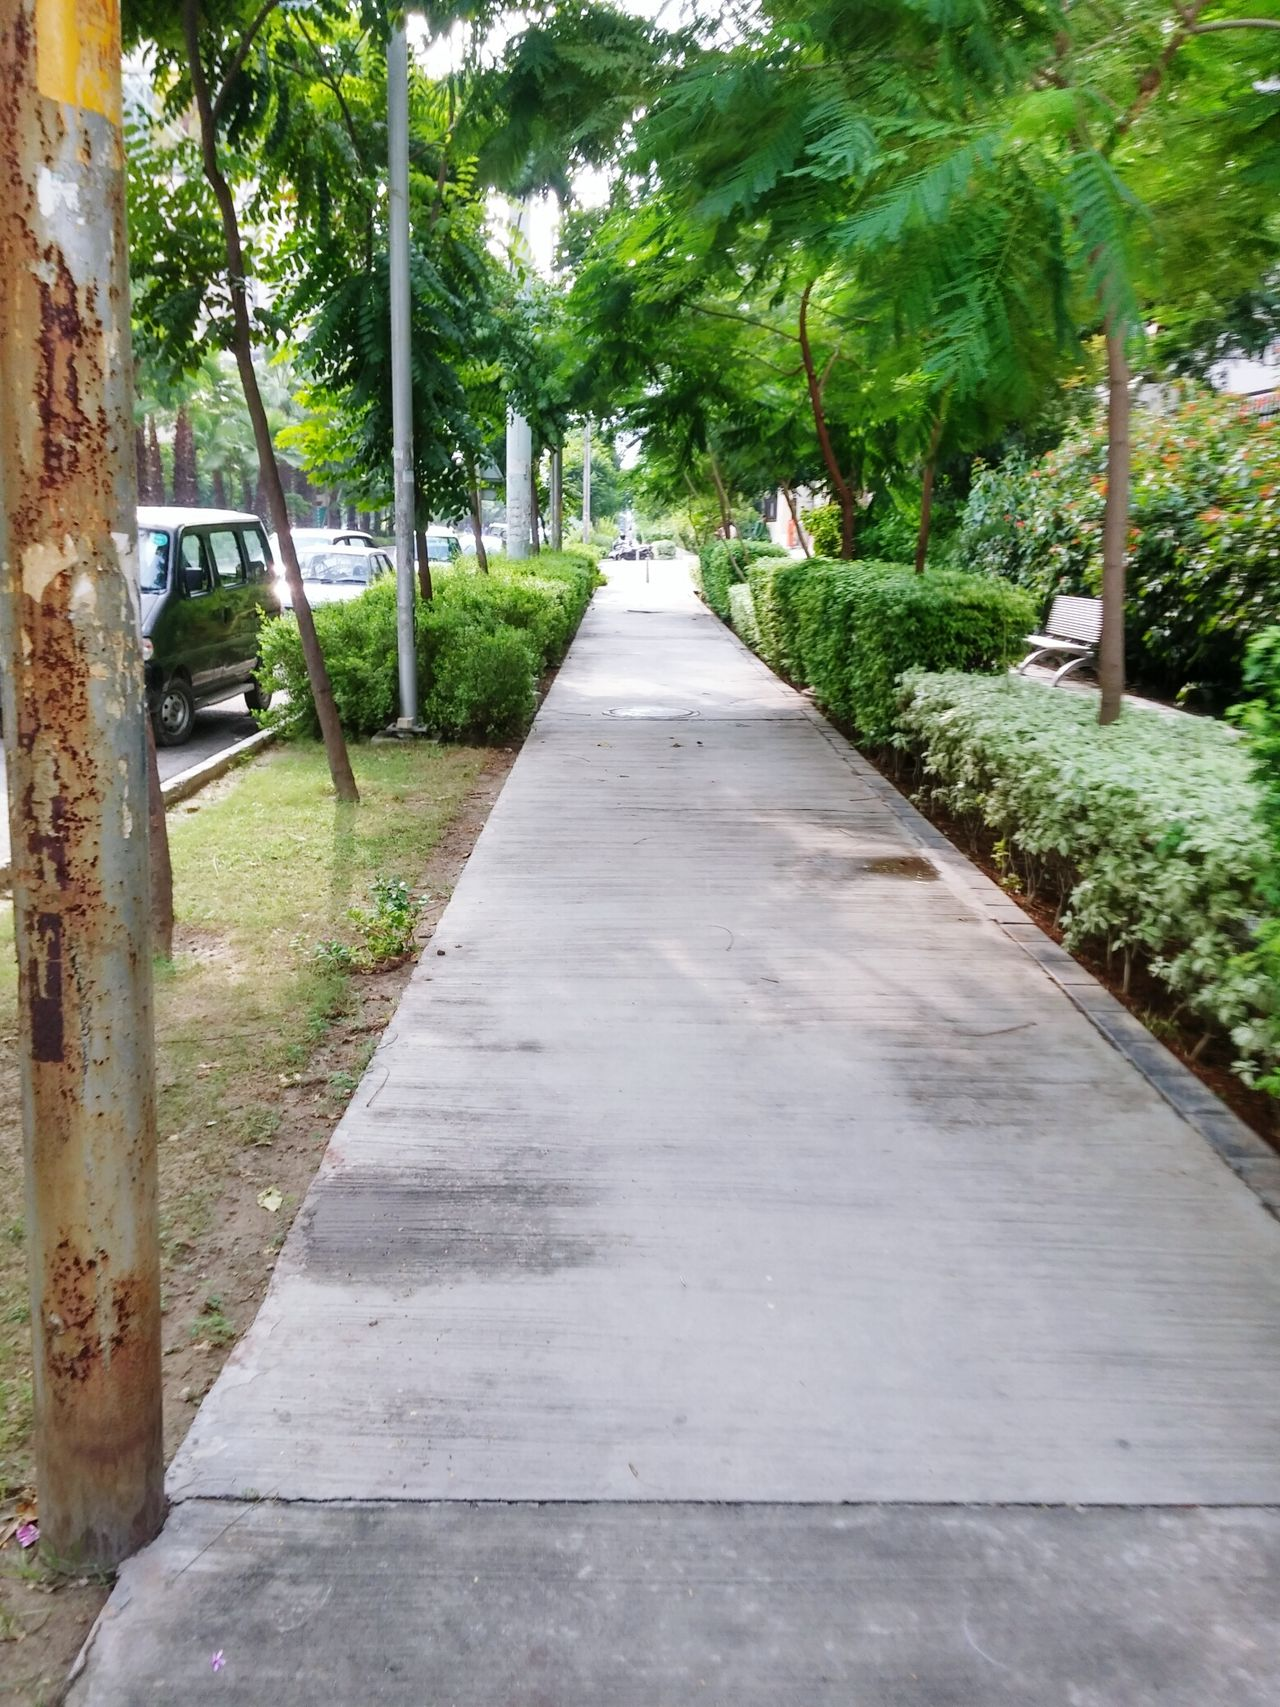 Roadside Walkway City India Ghaziabad